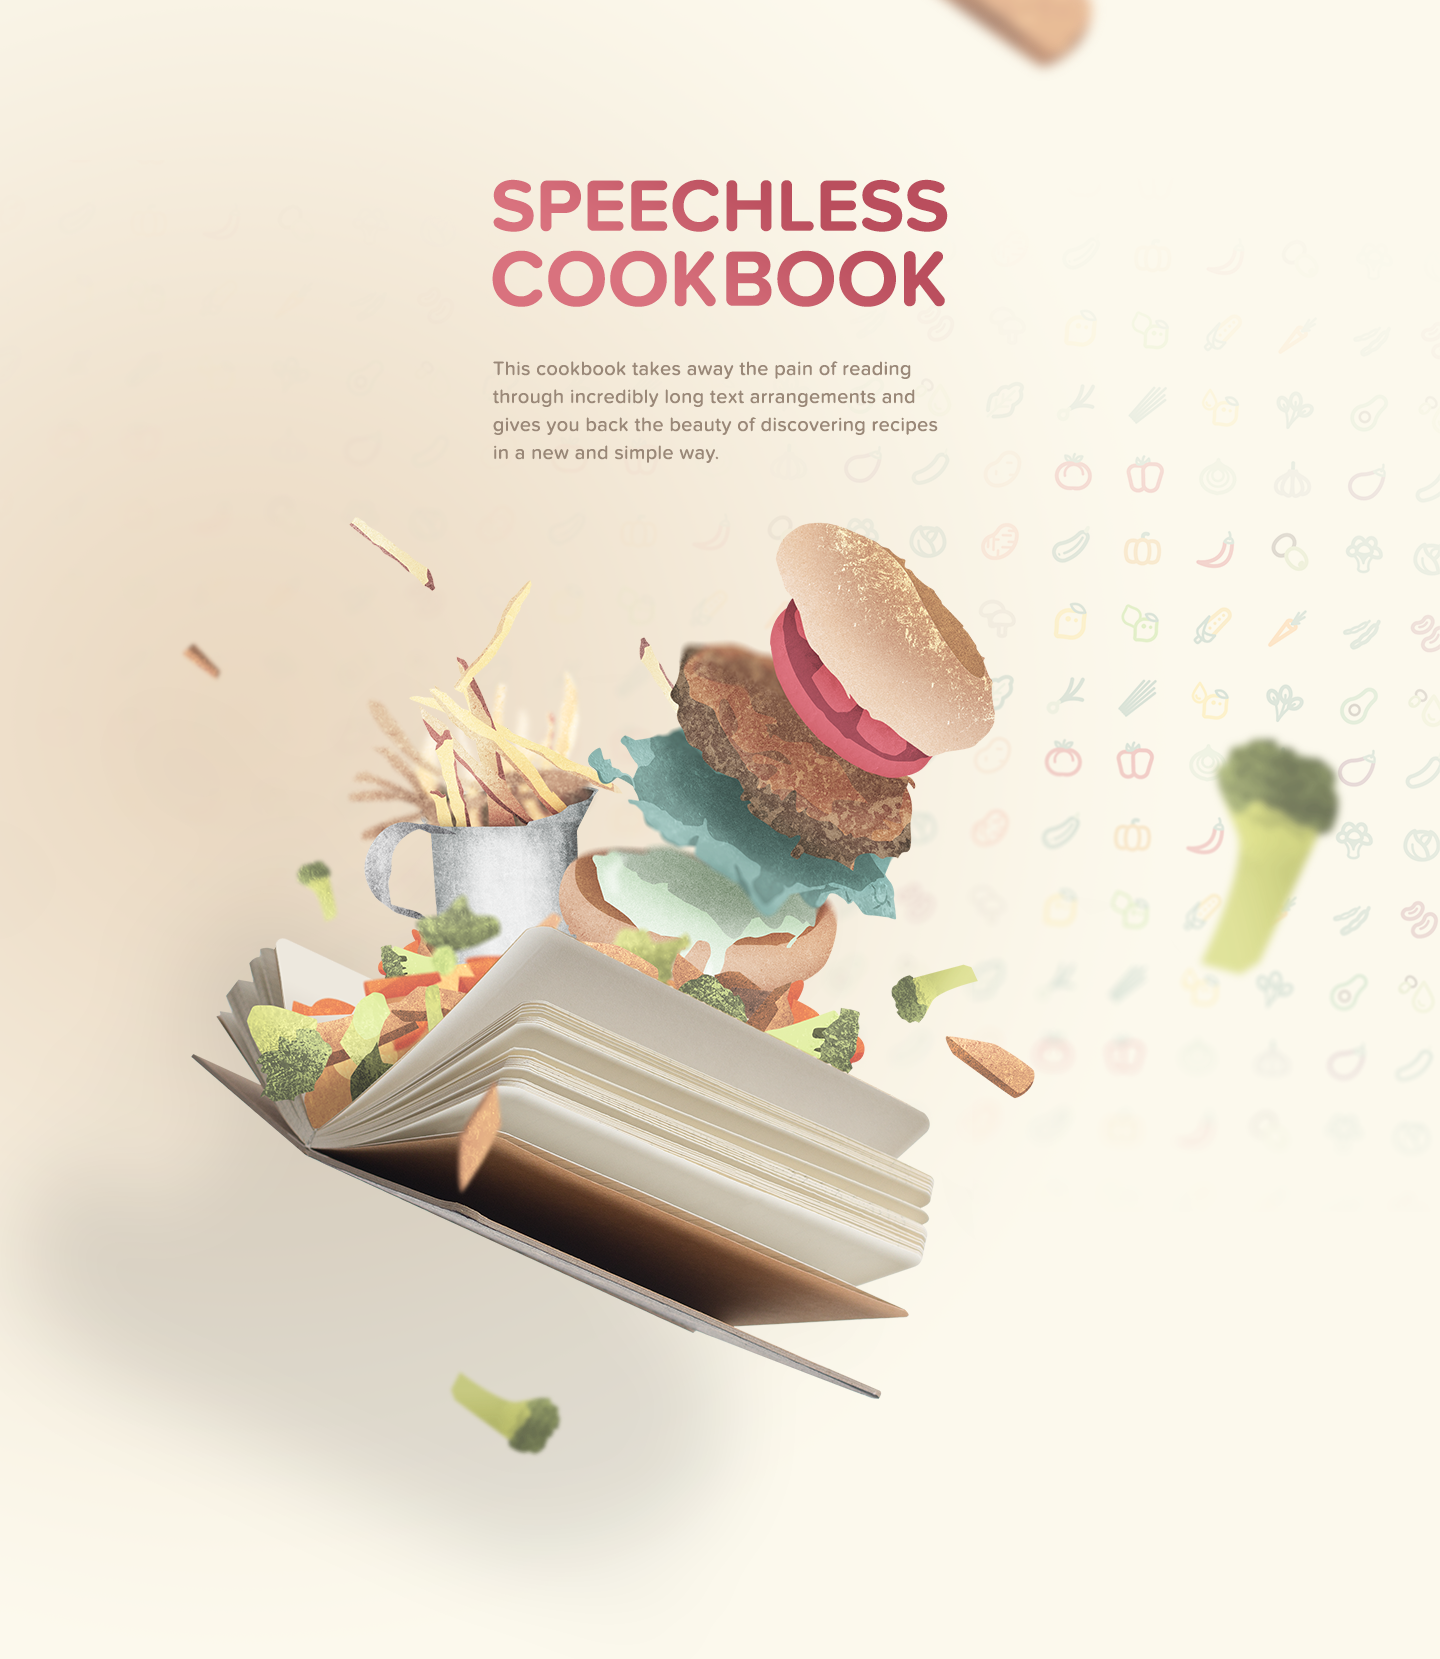 Roland Lehle, Speechless Cookbook